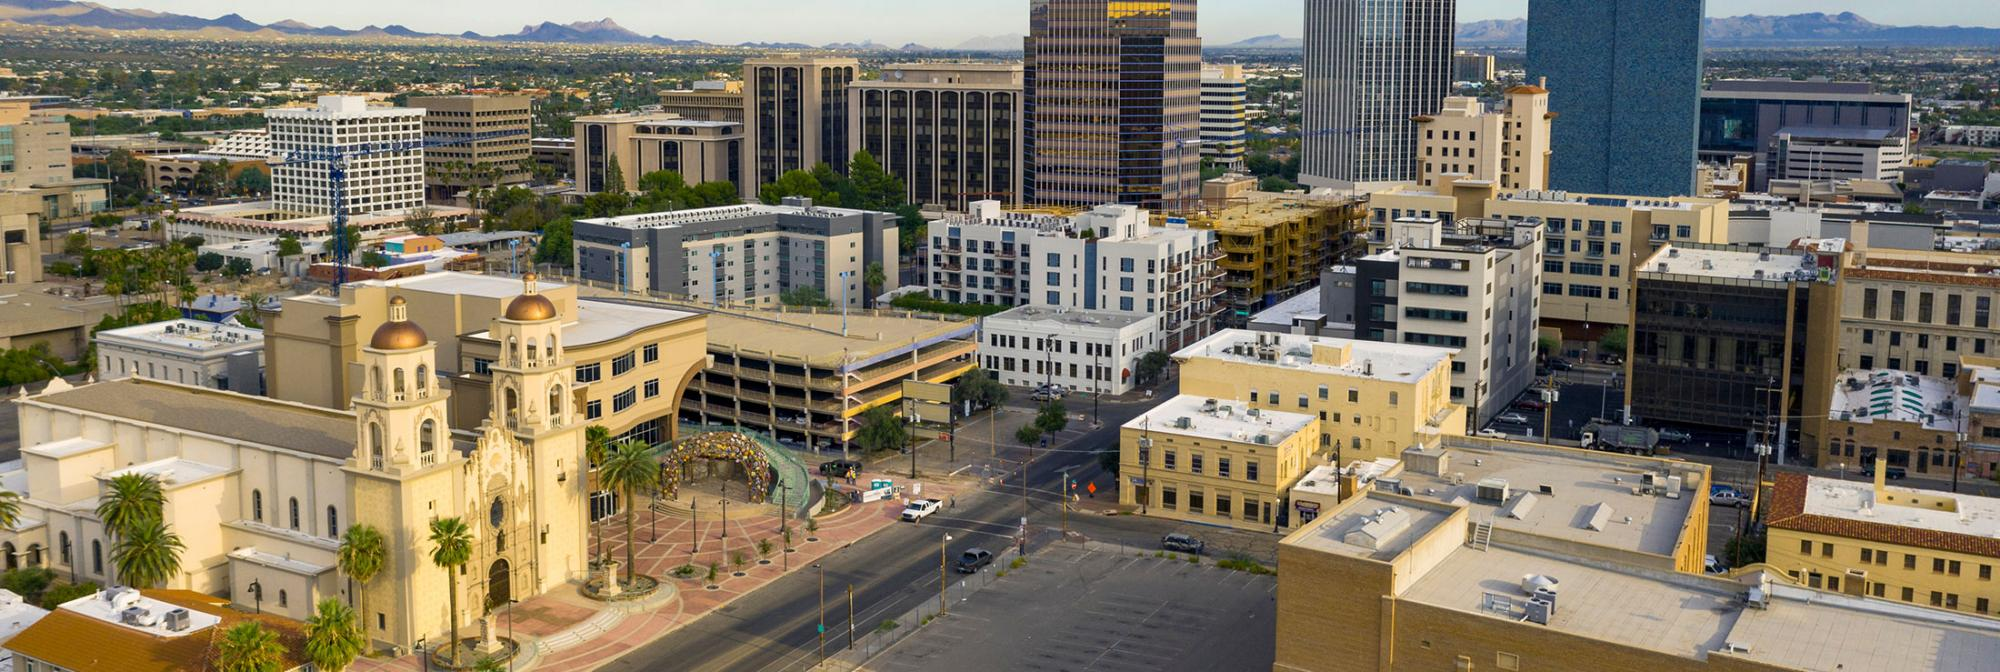 Aerial view of downtown Tucson